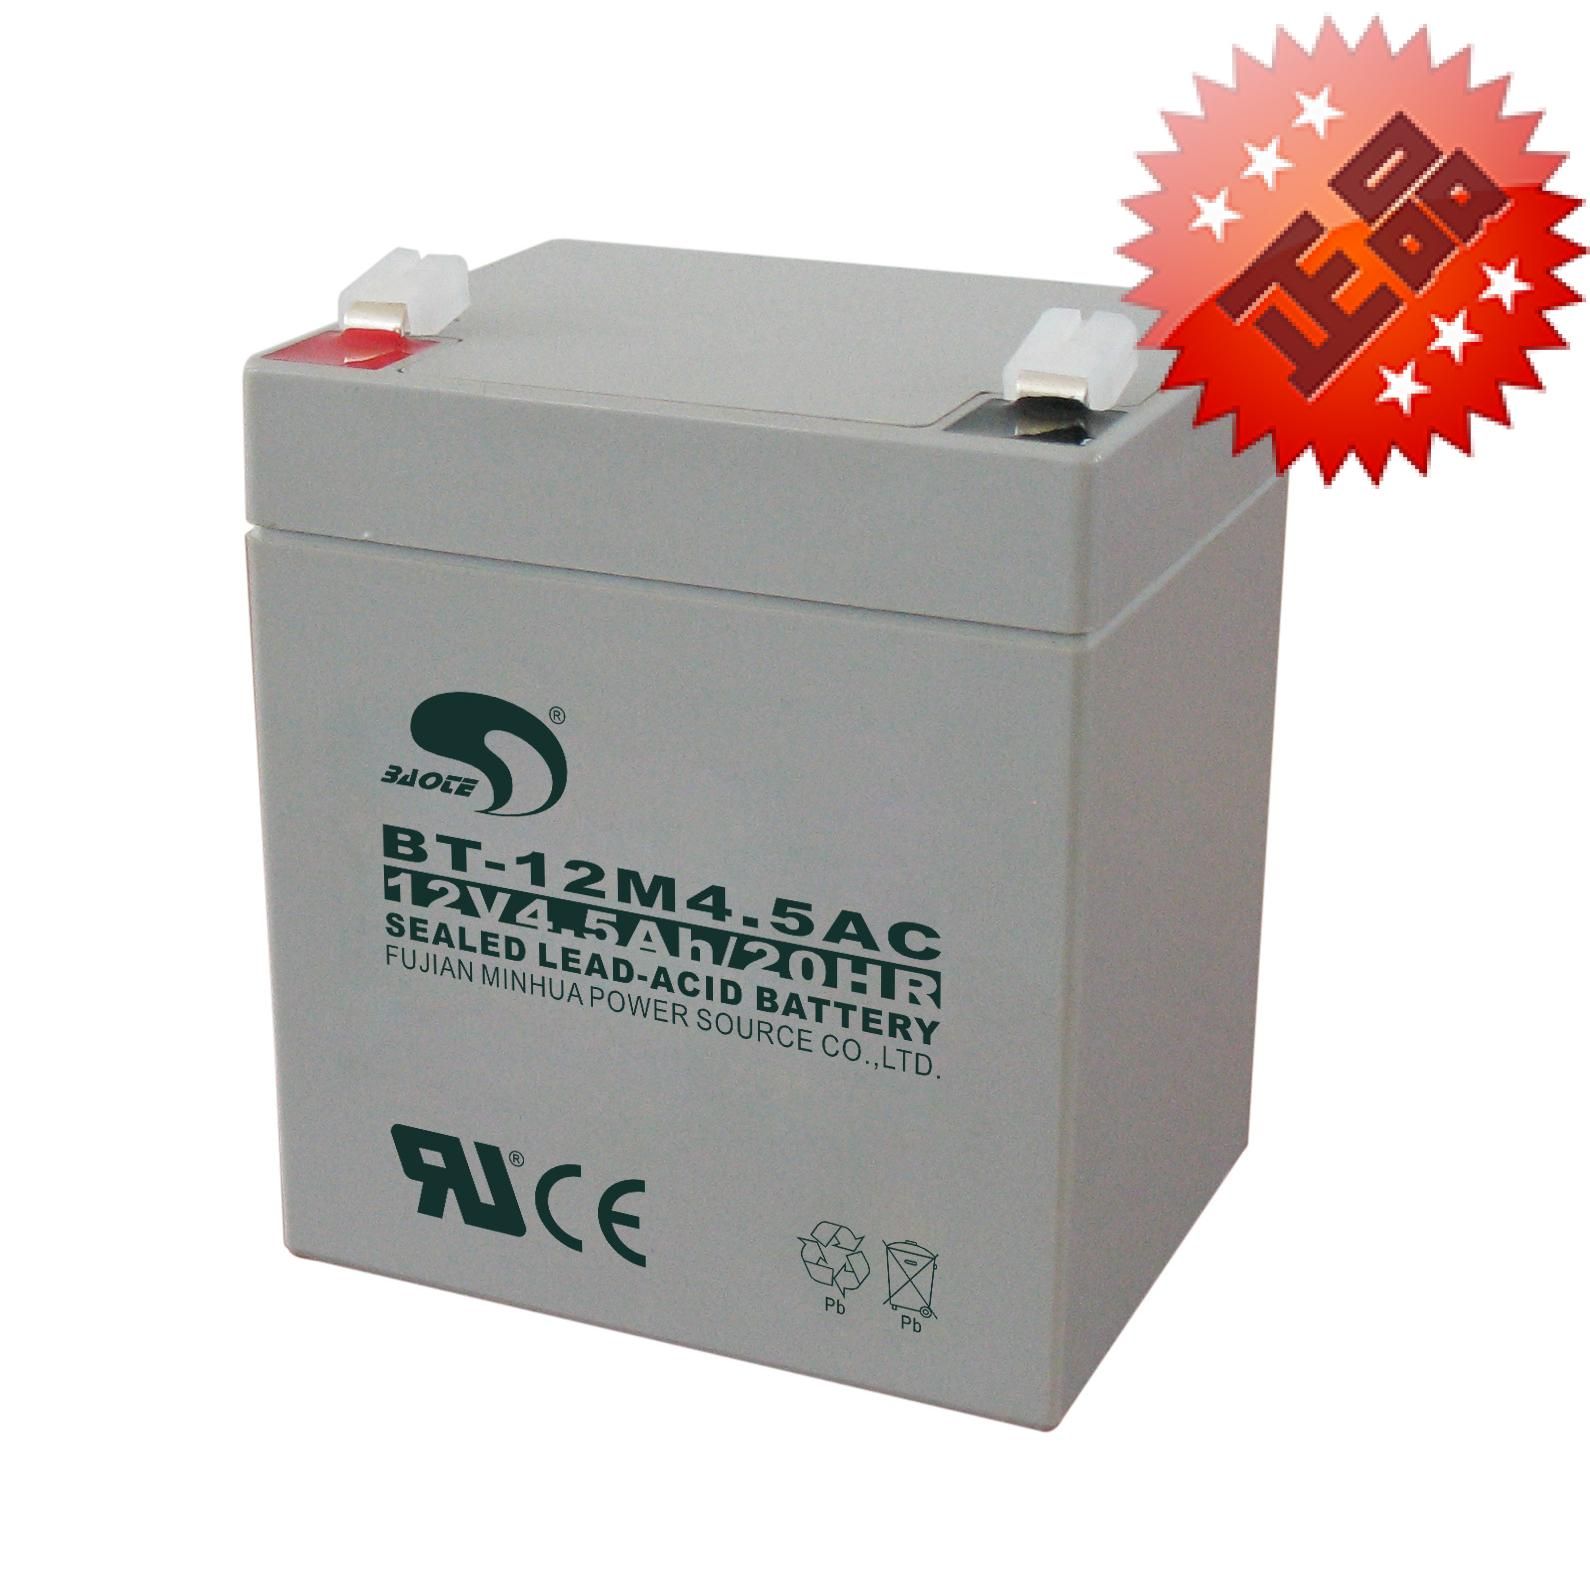 Where to buy a special battery for the MotorMax motorcycle 20